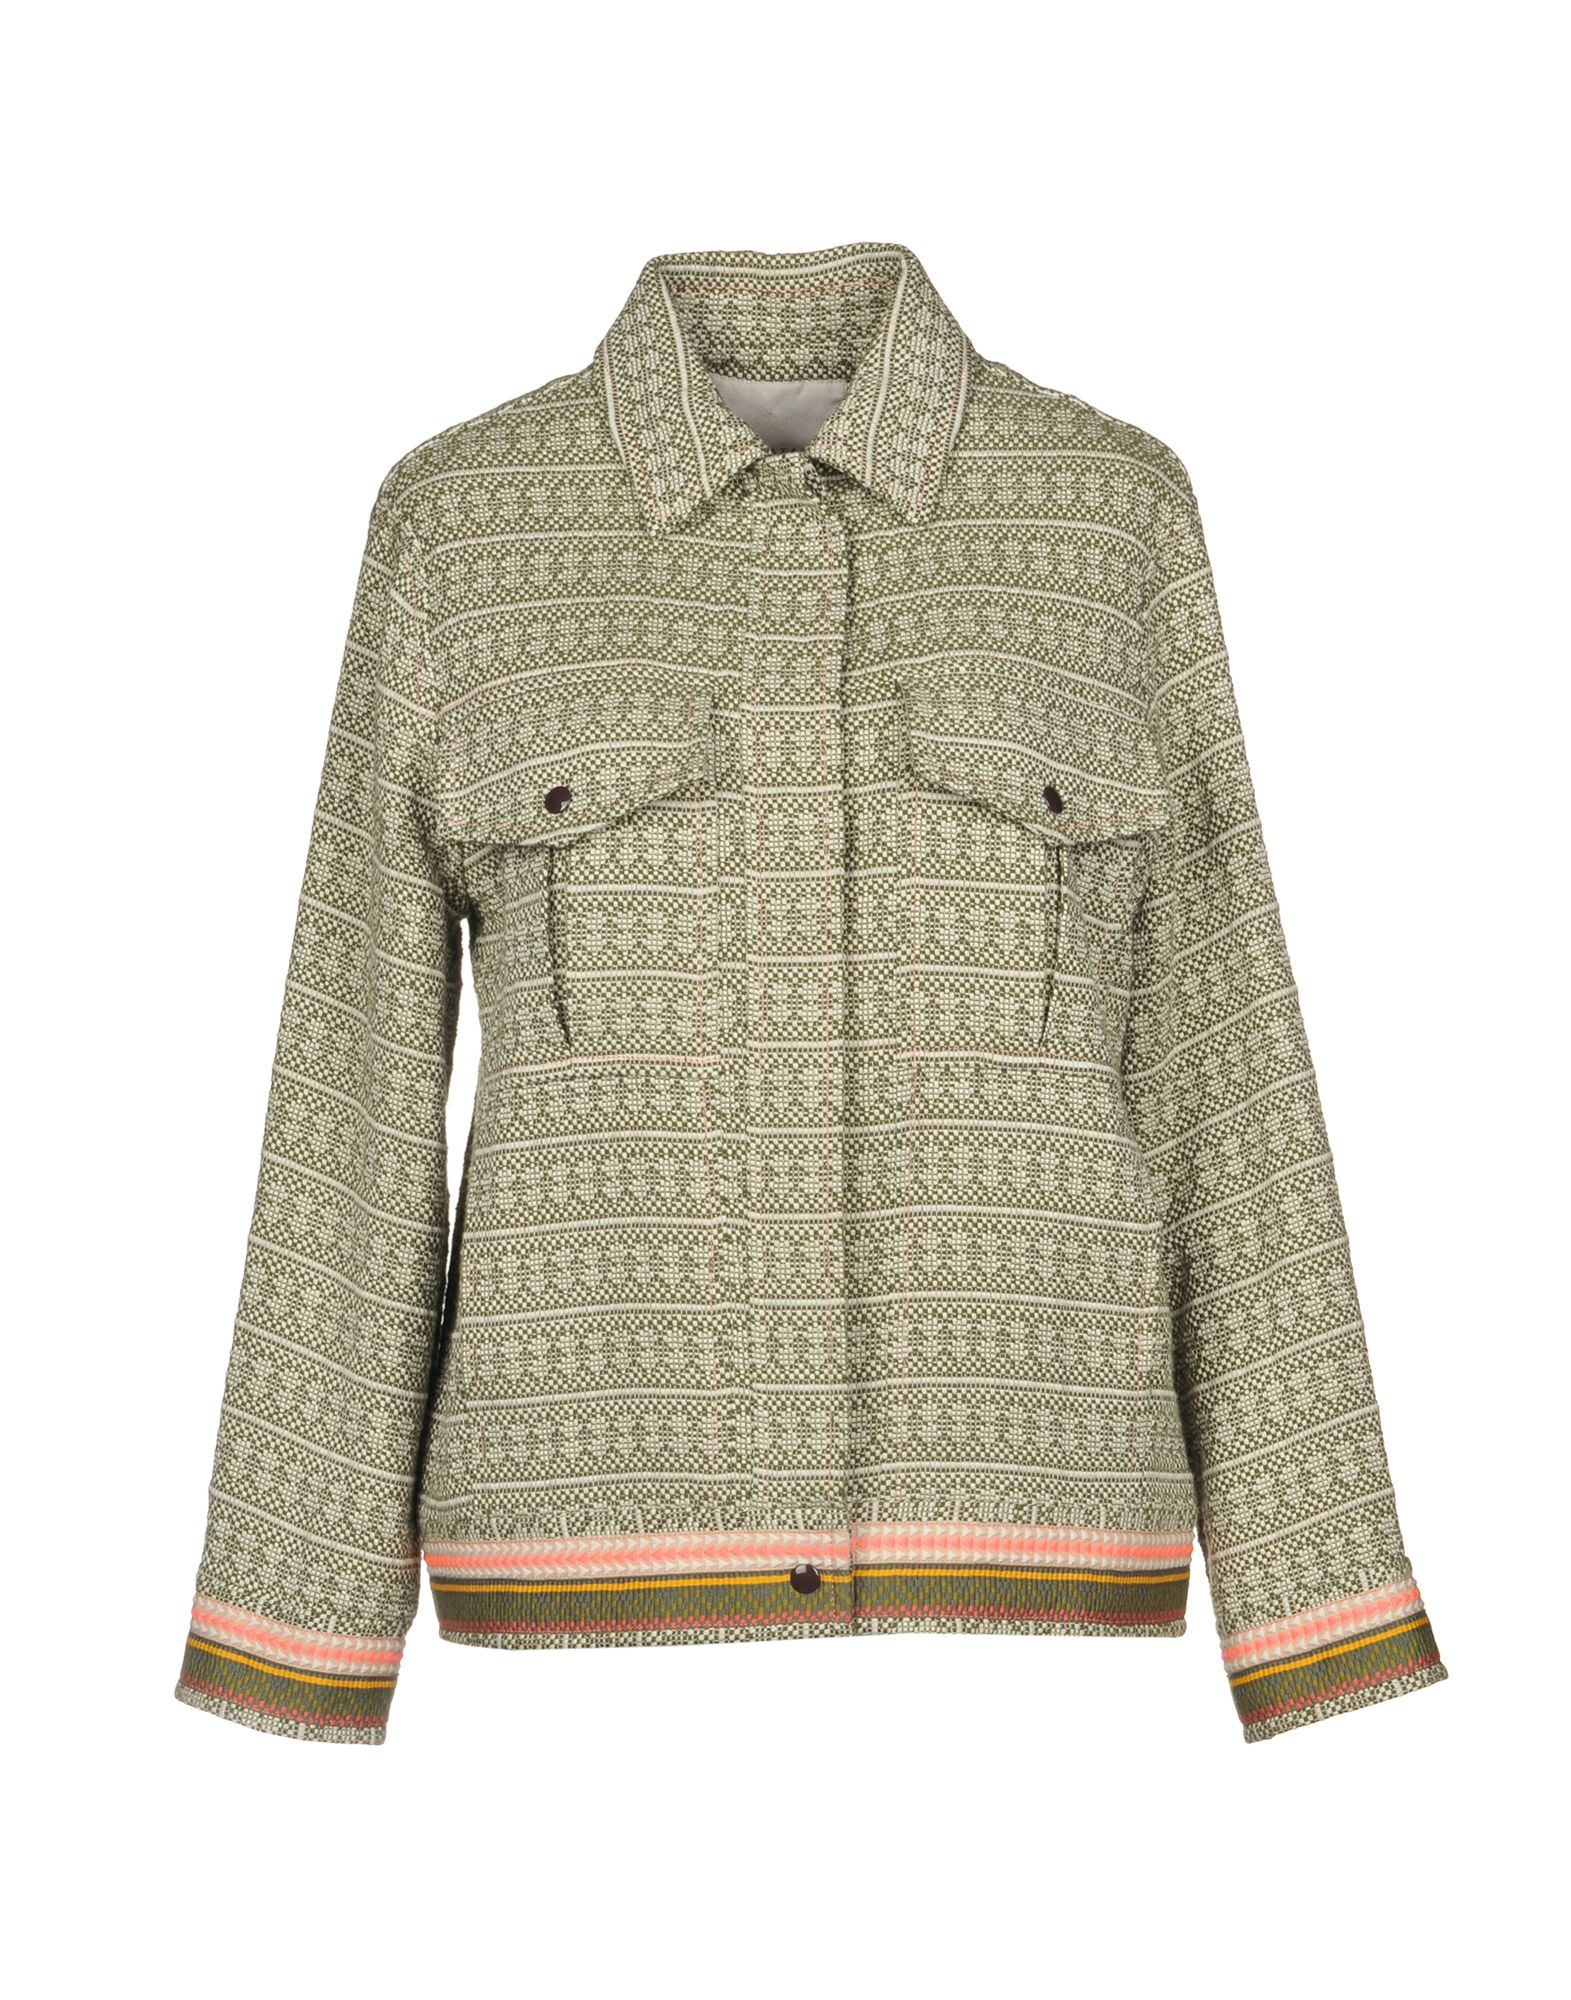 MIAHATAMI Jacket in Military Green